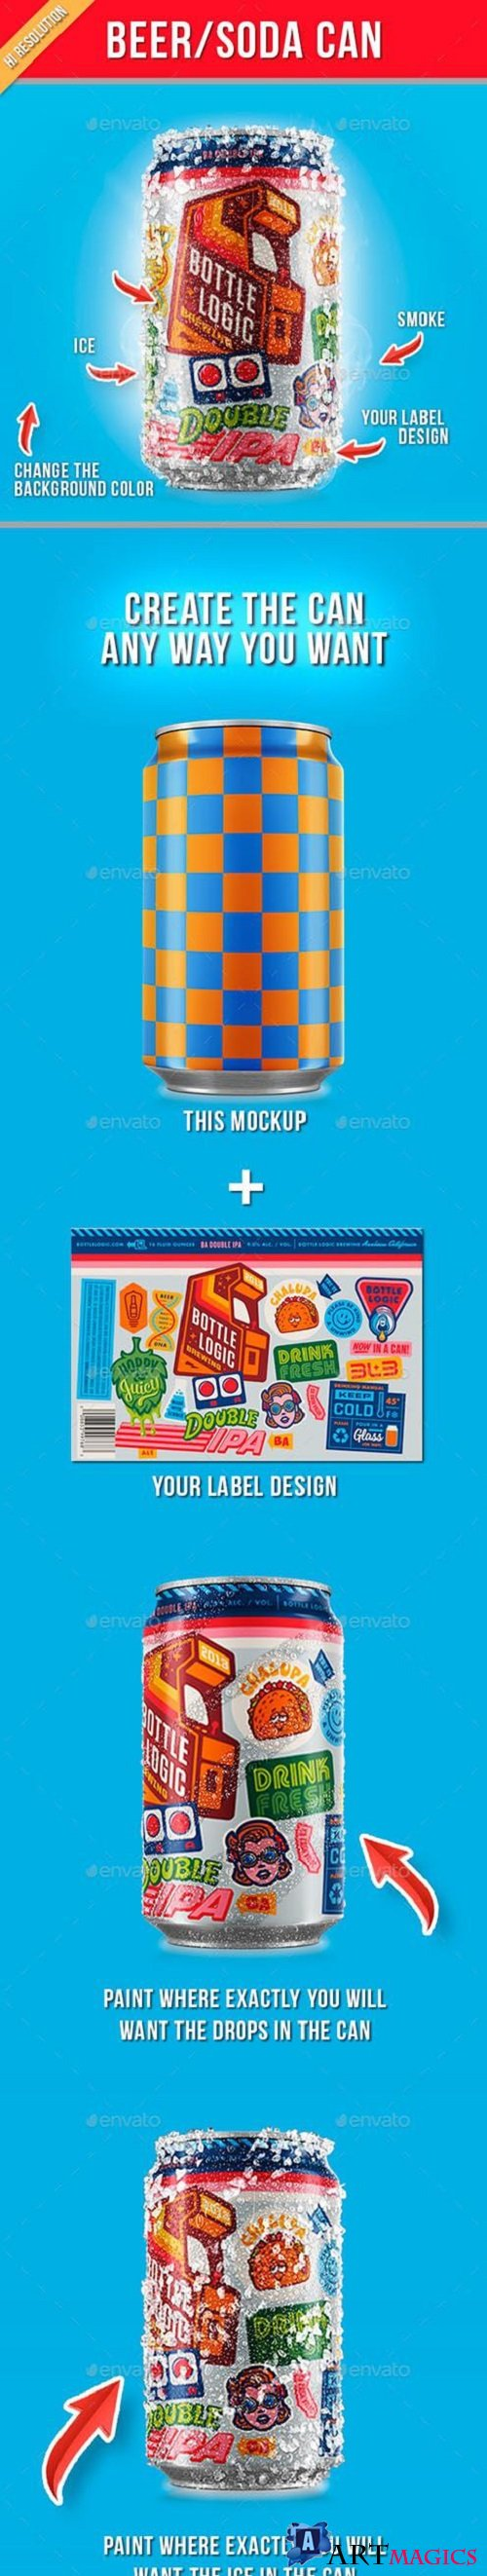 Beer Soda Can Mockup 21352984